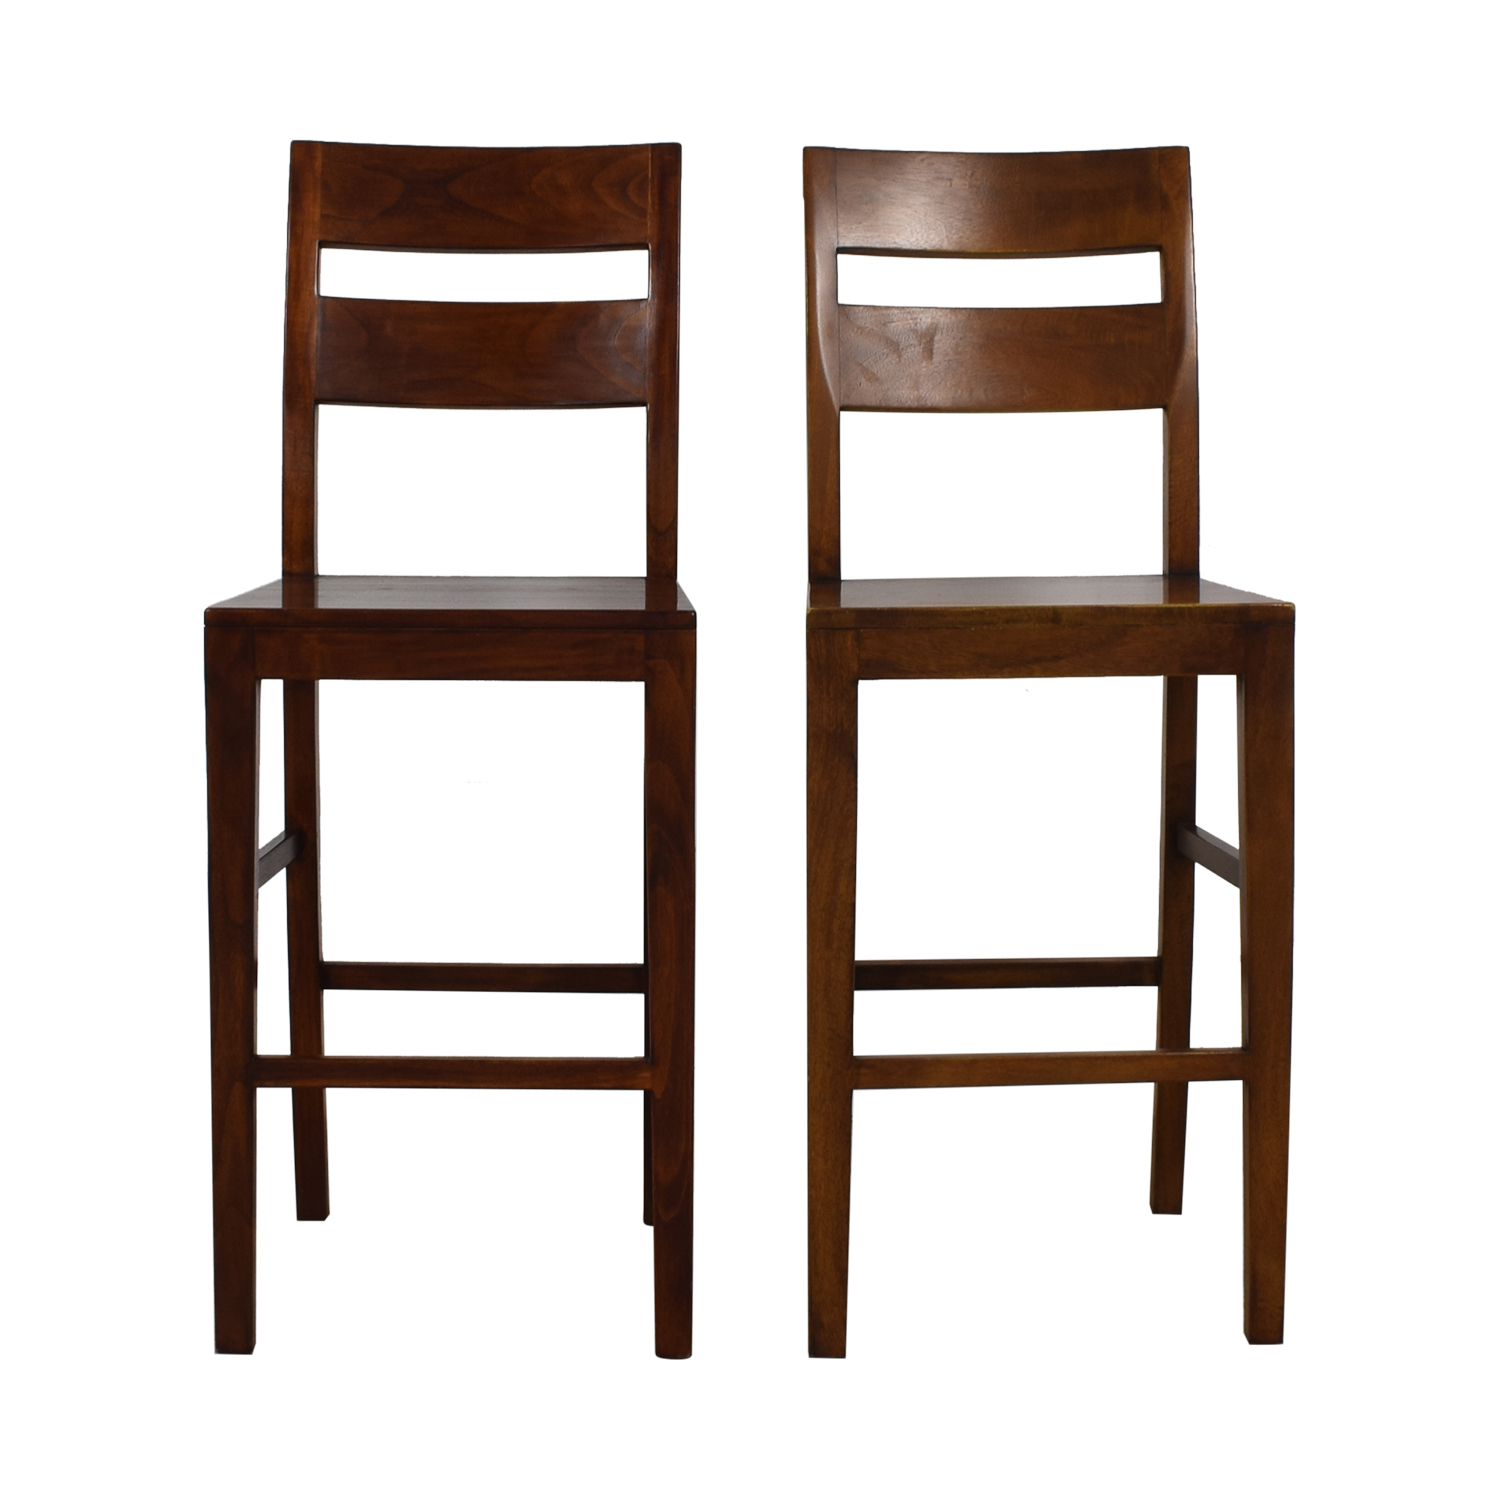 Crate & Barrel Crate & Barrel Counter Breakfast Bar Stools brown